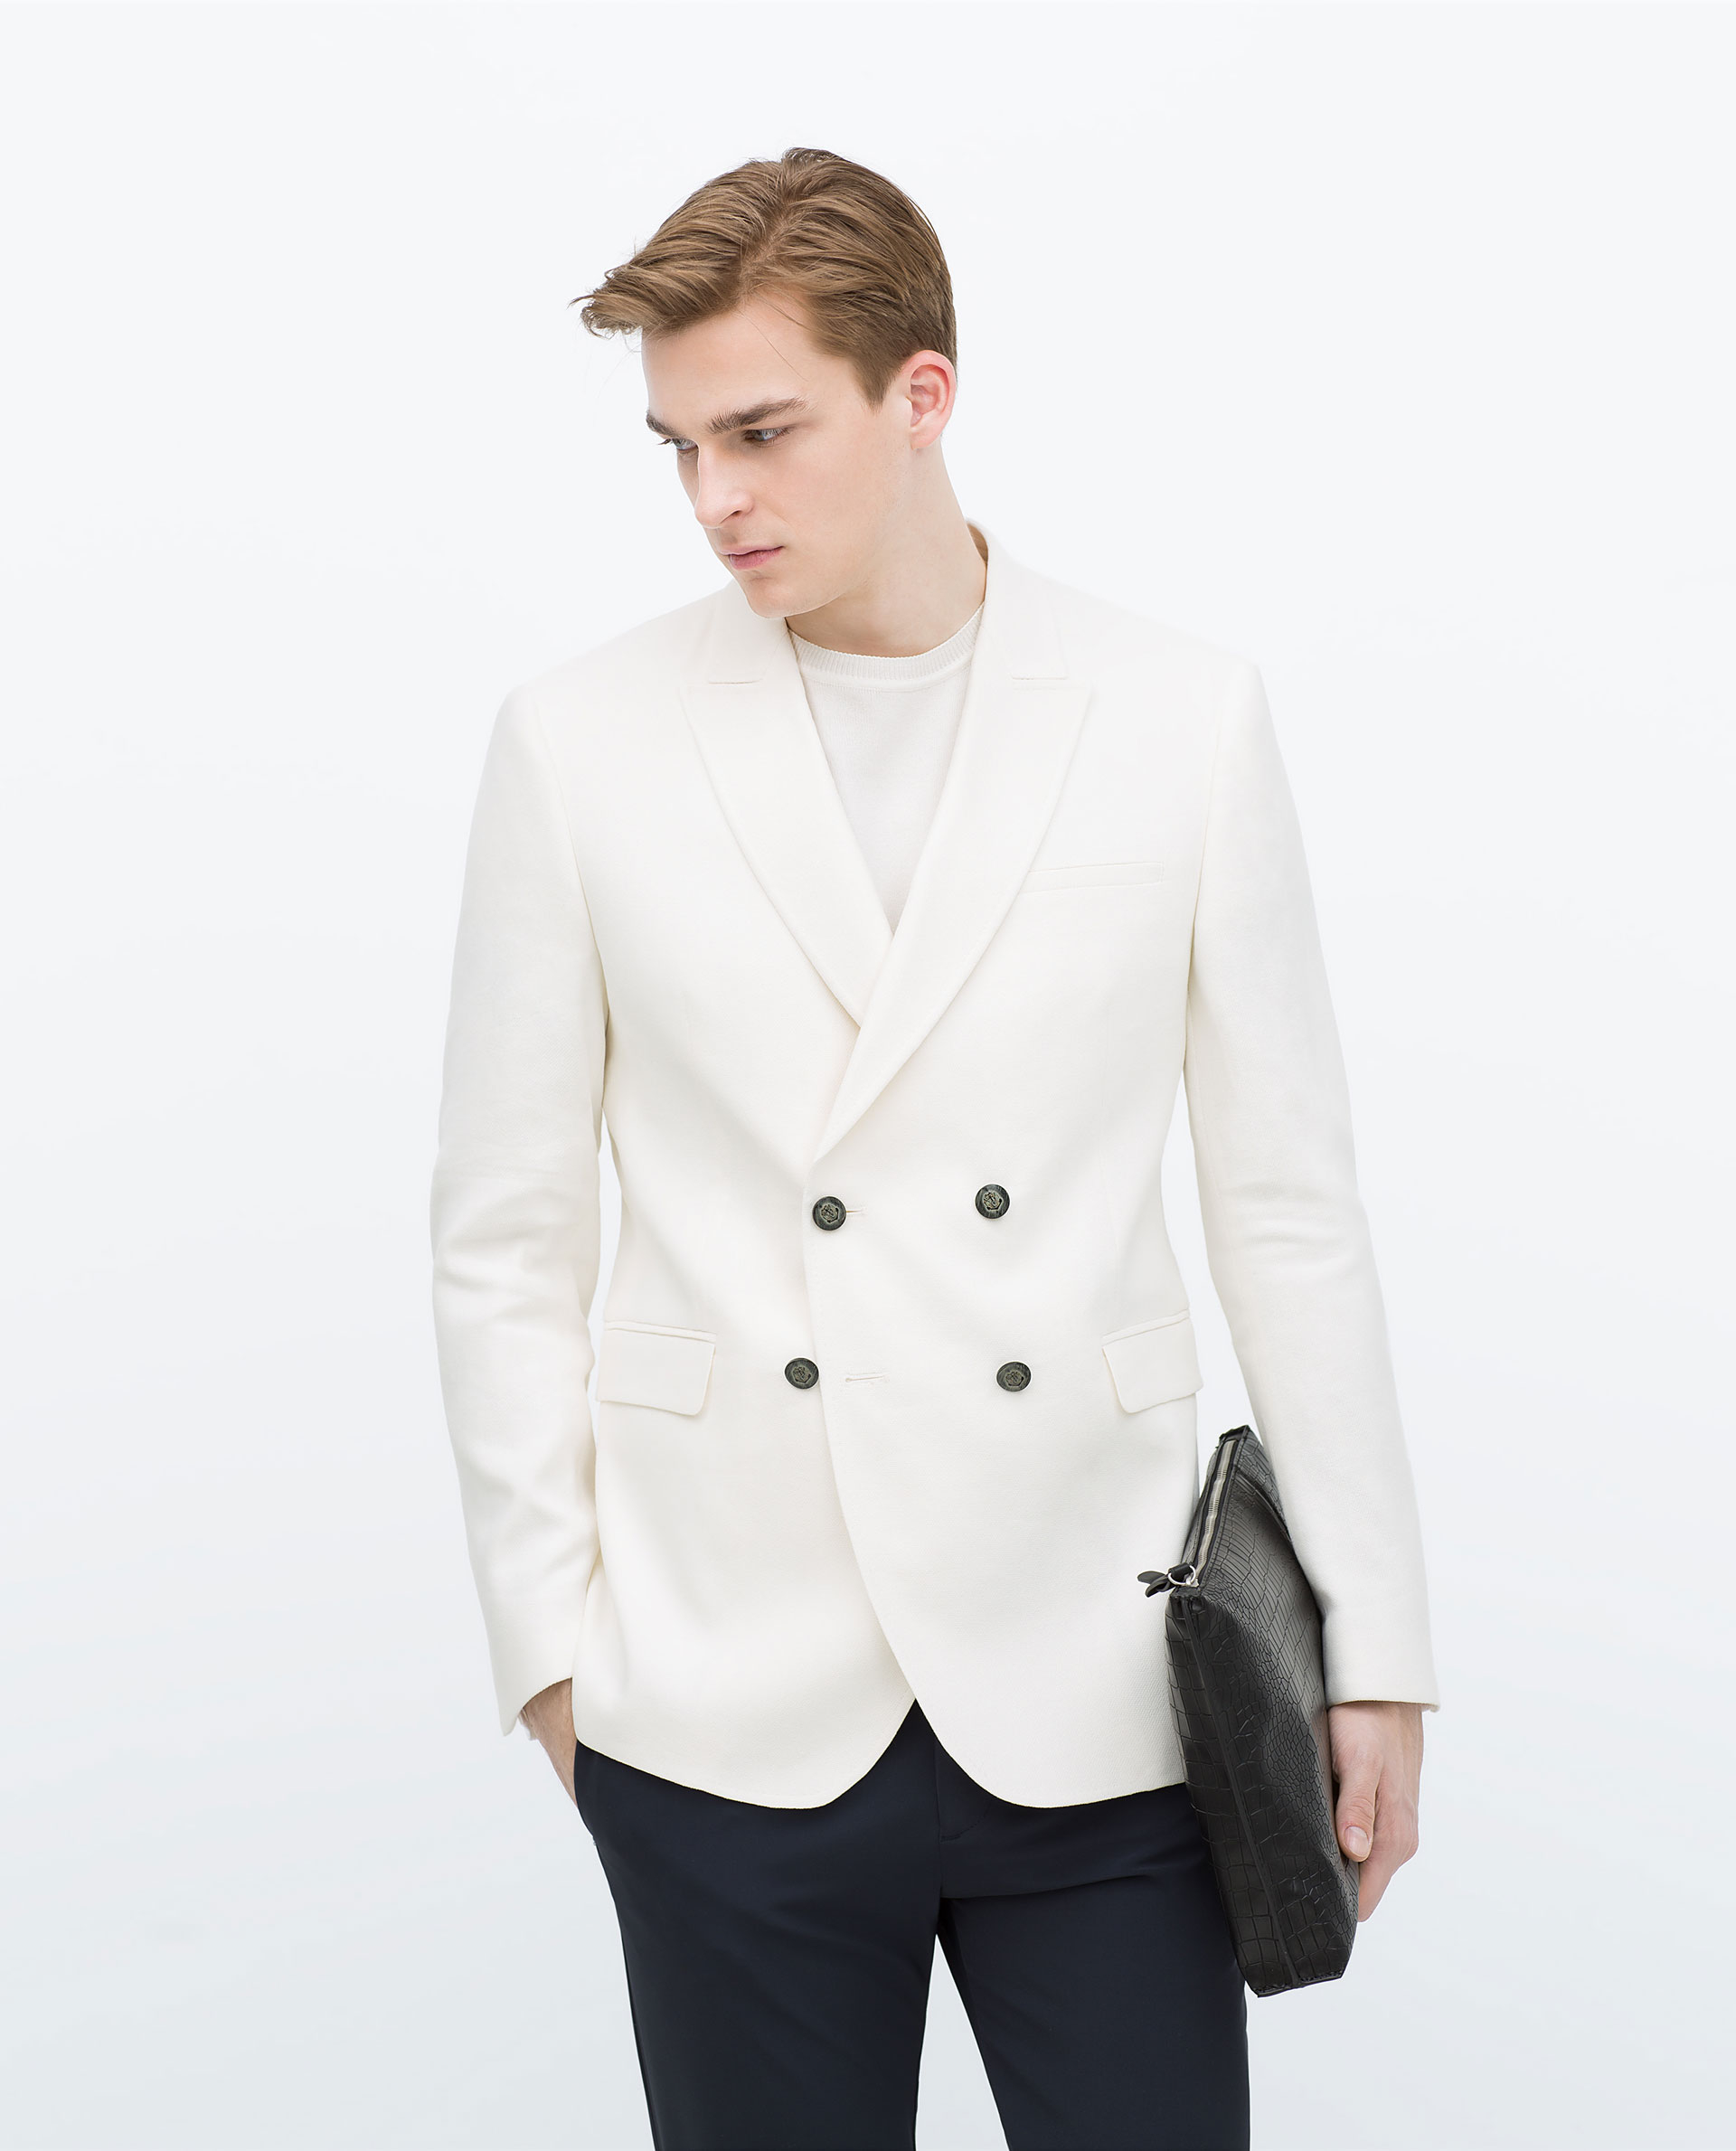 Zara White Double-Breasted Jacket White Double-Breasted Jacket in ...